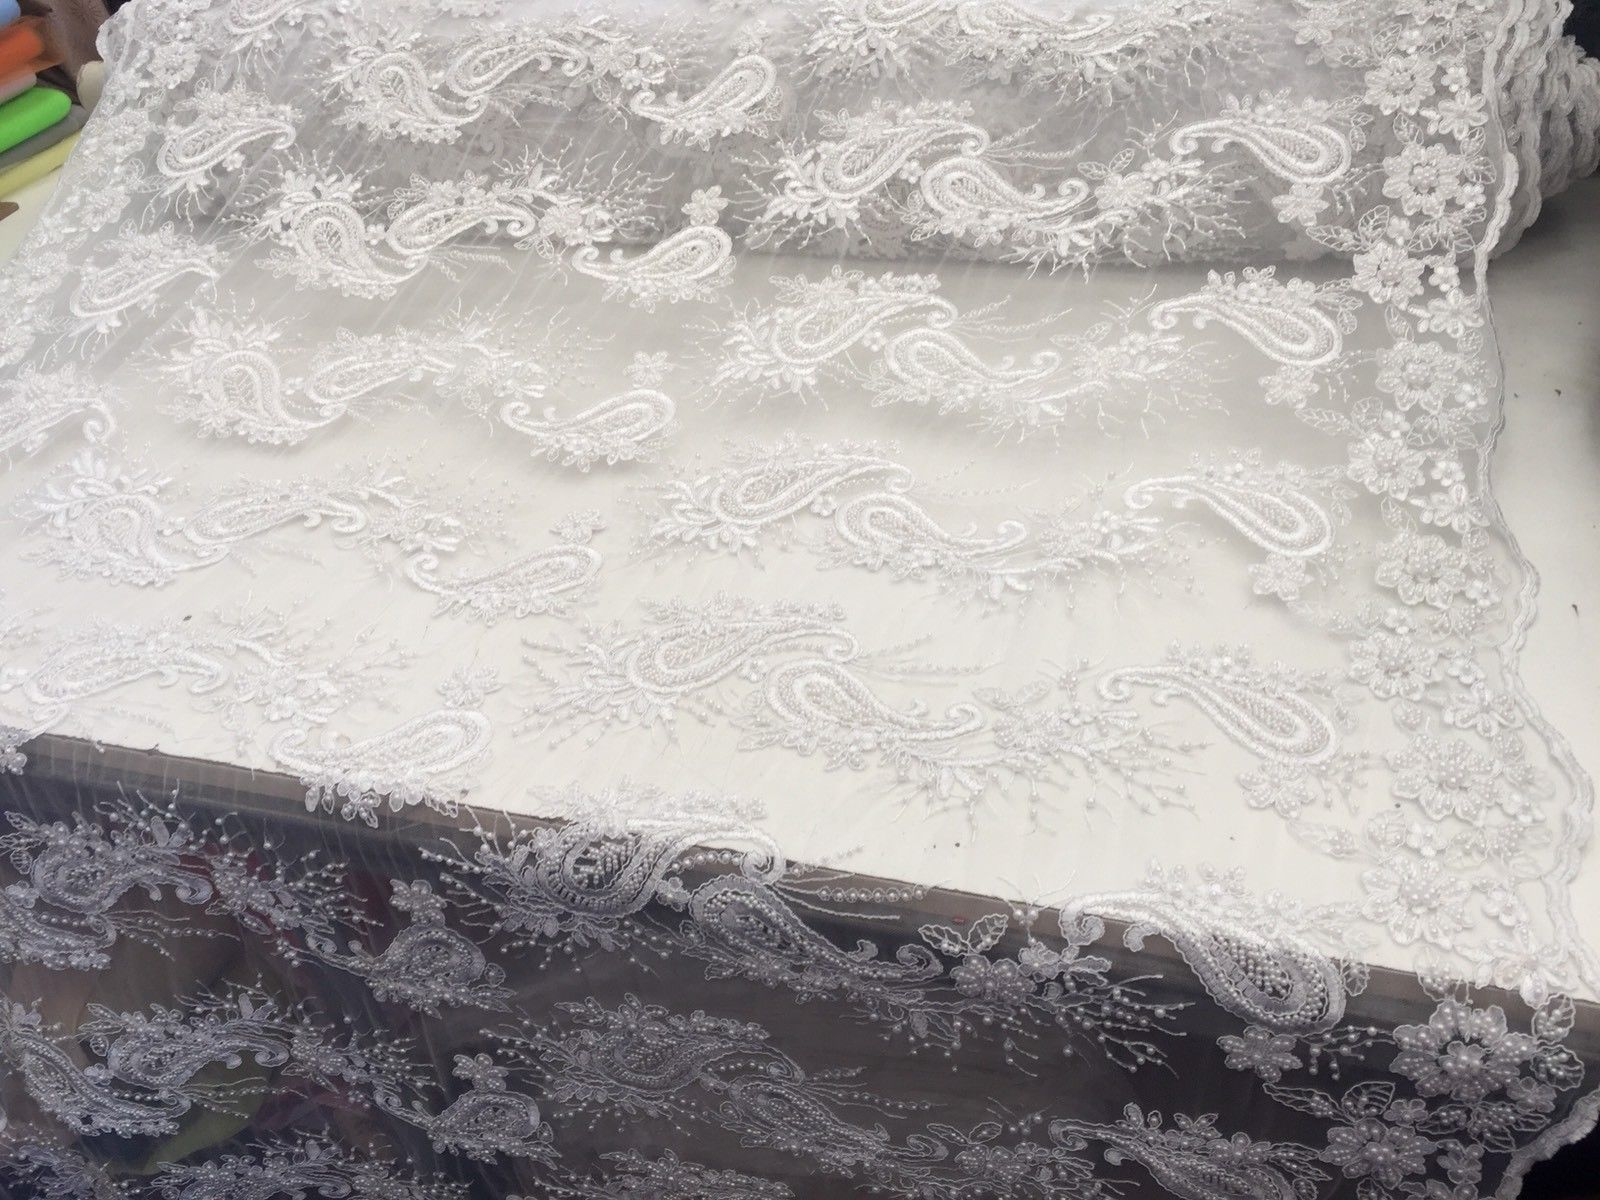 Beaded White Mesh Lace Fabric With Pearls Luxurious By Yard - KINGDOM OF FABRICS